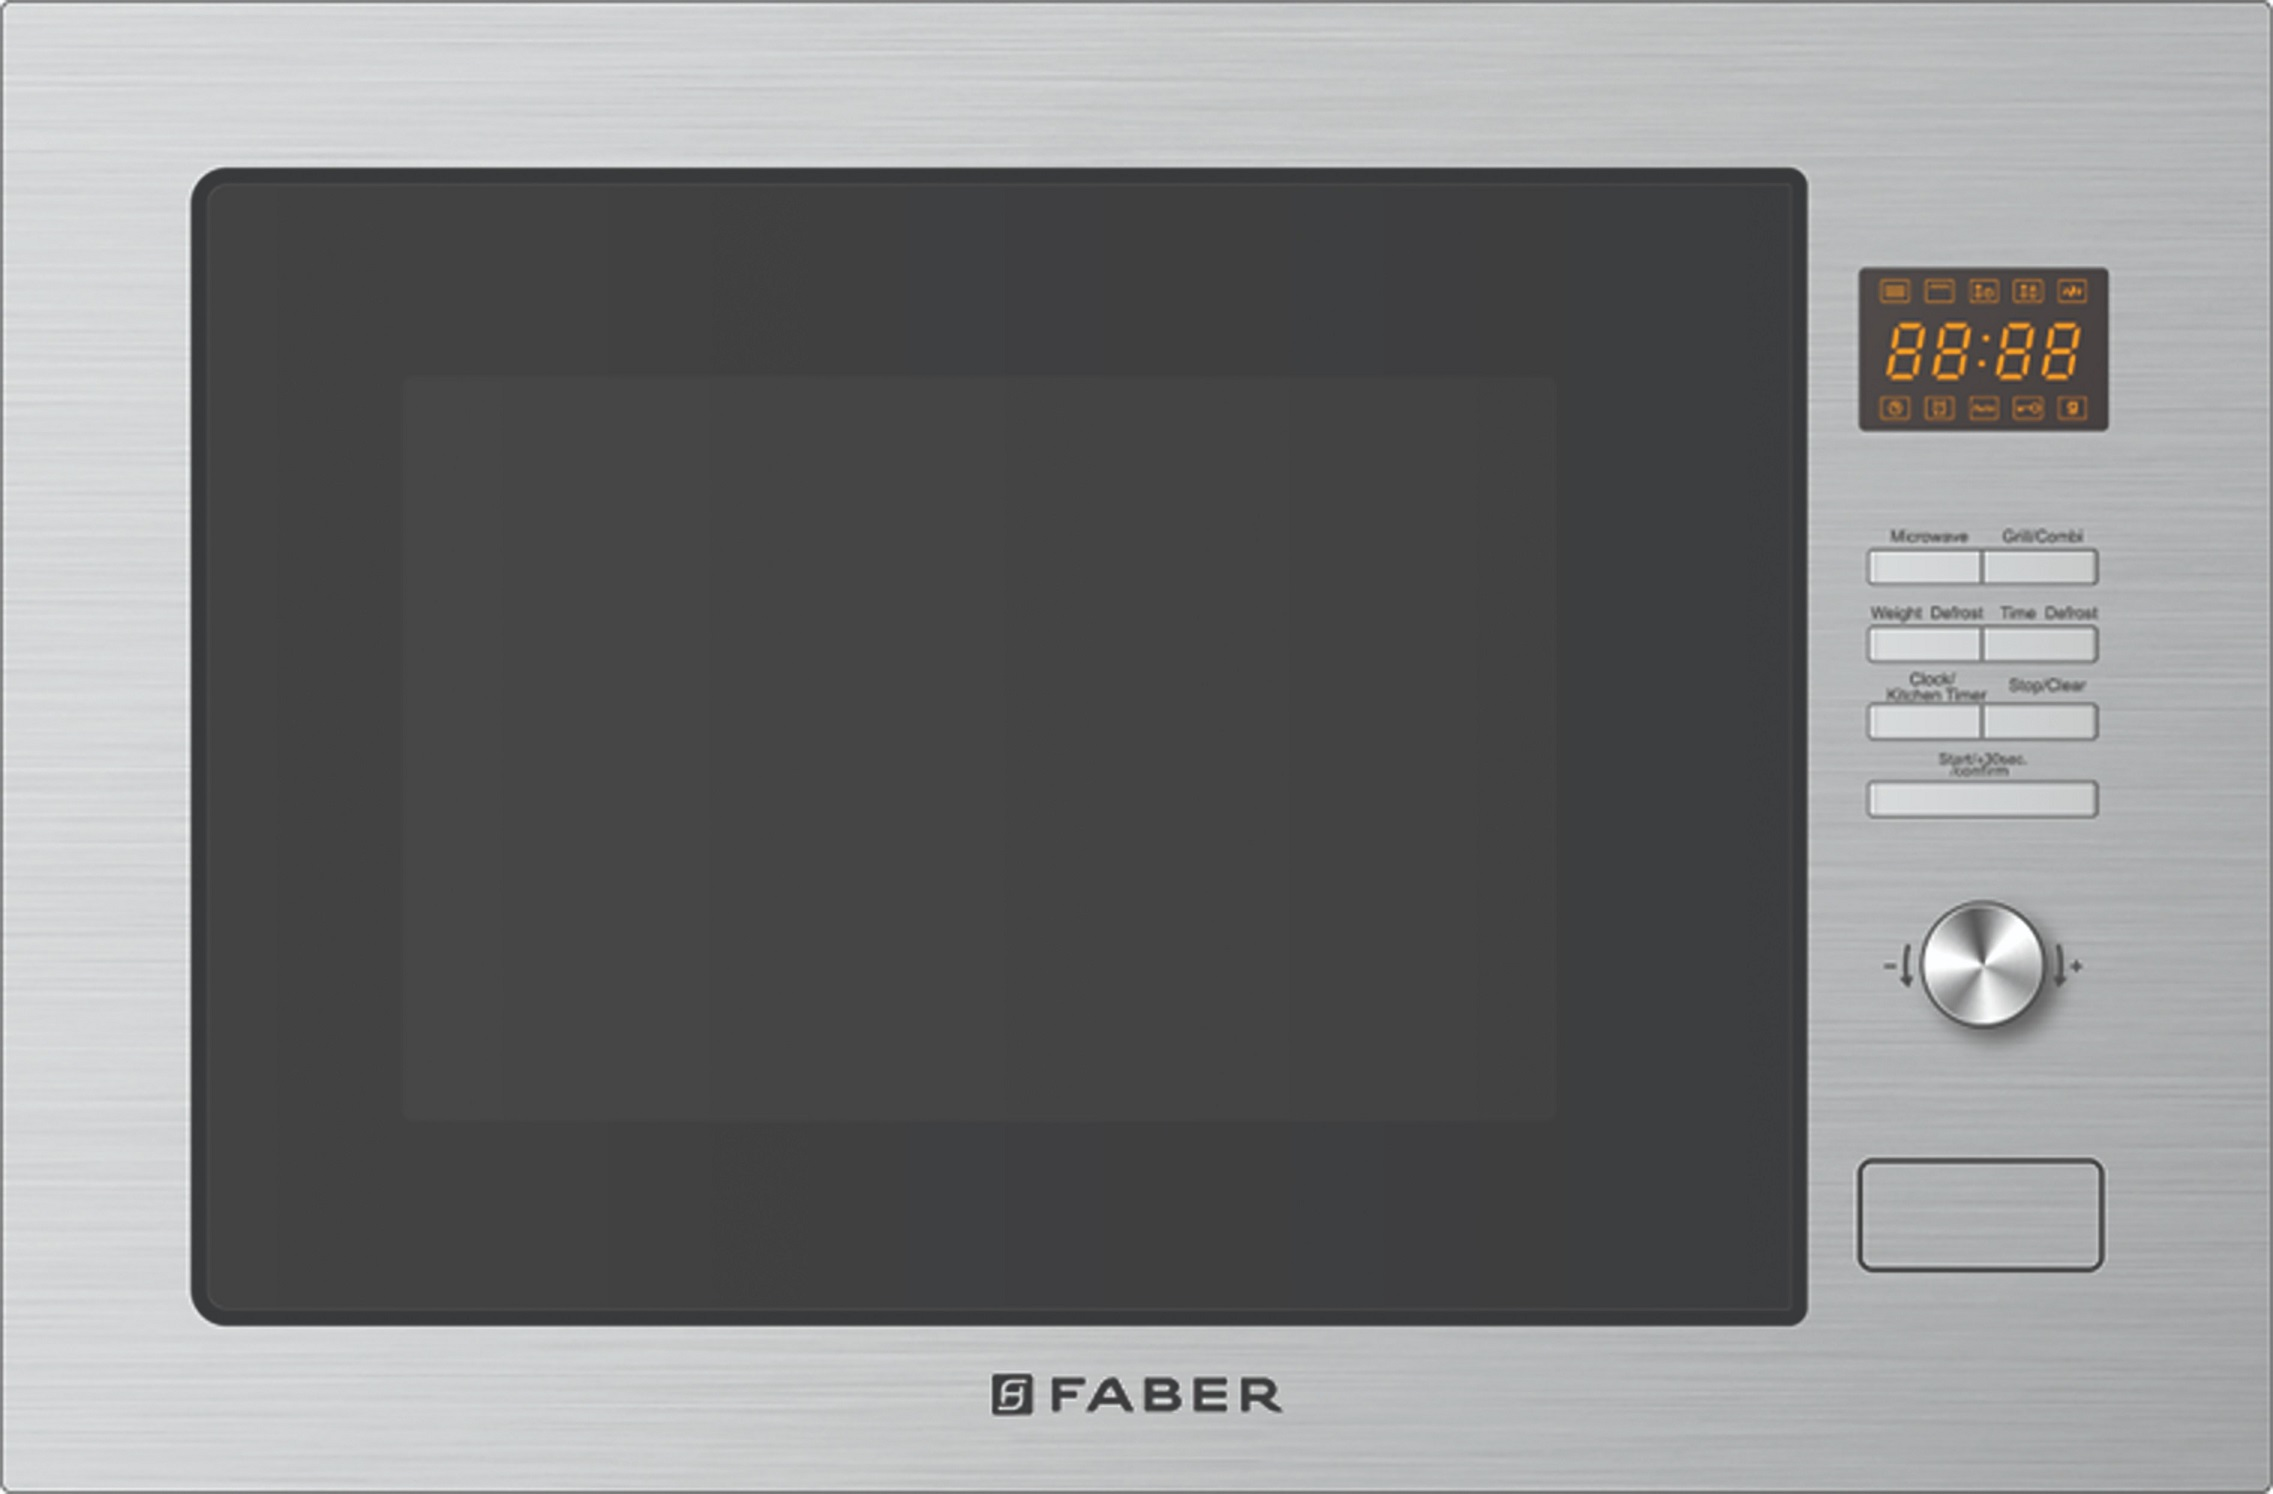 Faber Stainless steel Oven Microwave FMWO 32 NH I by HomeTown